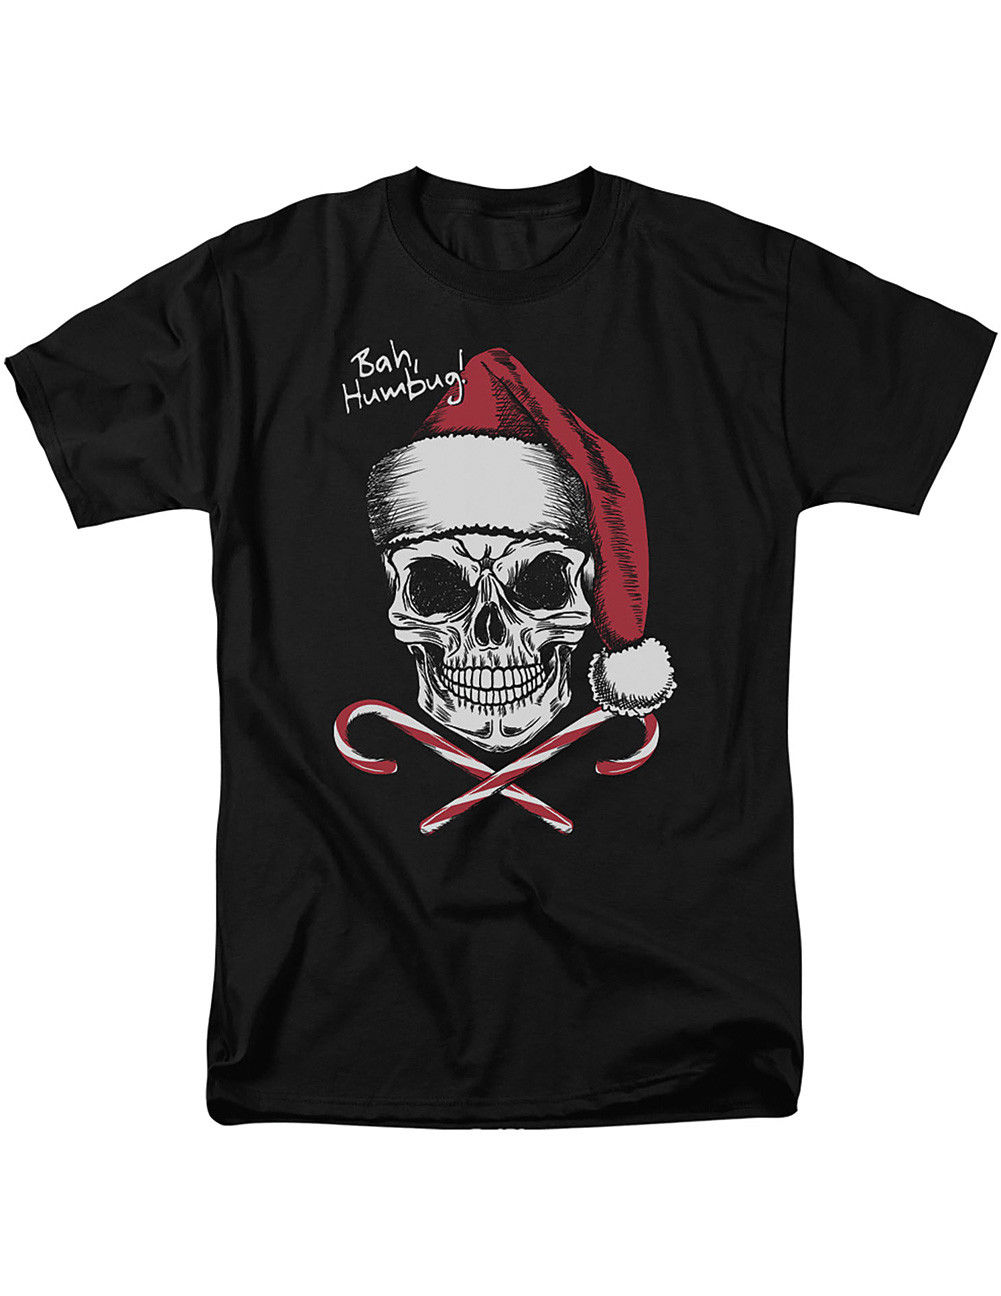 NEW NWT Skull Face w/ Santa Hat Candy Canes T-Shirt - Bah Humbug Types